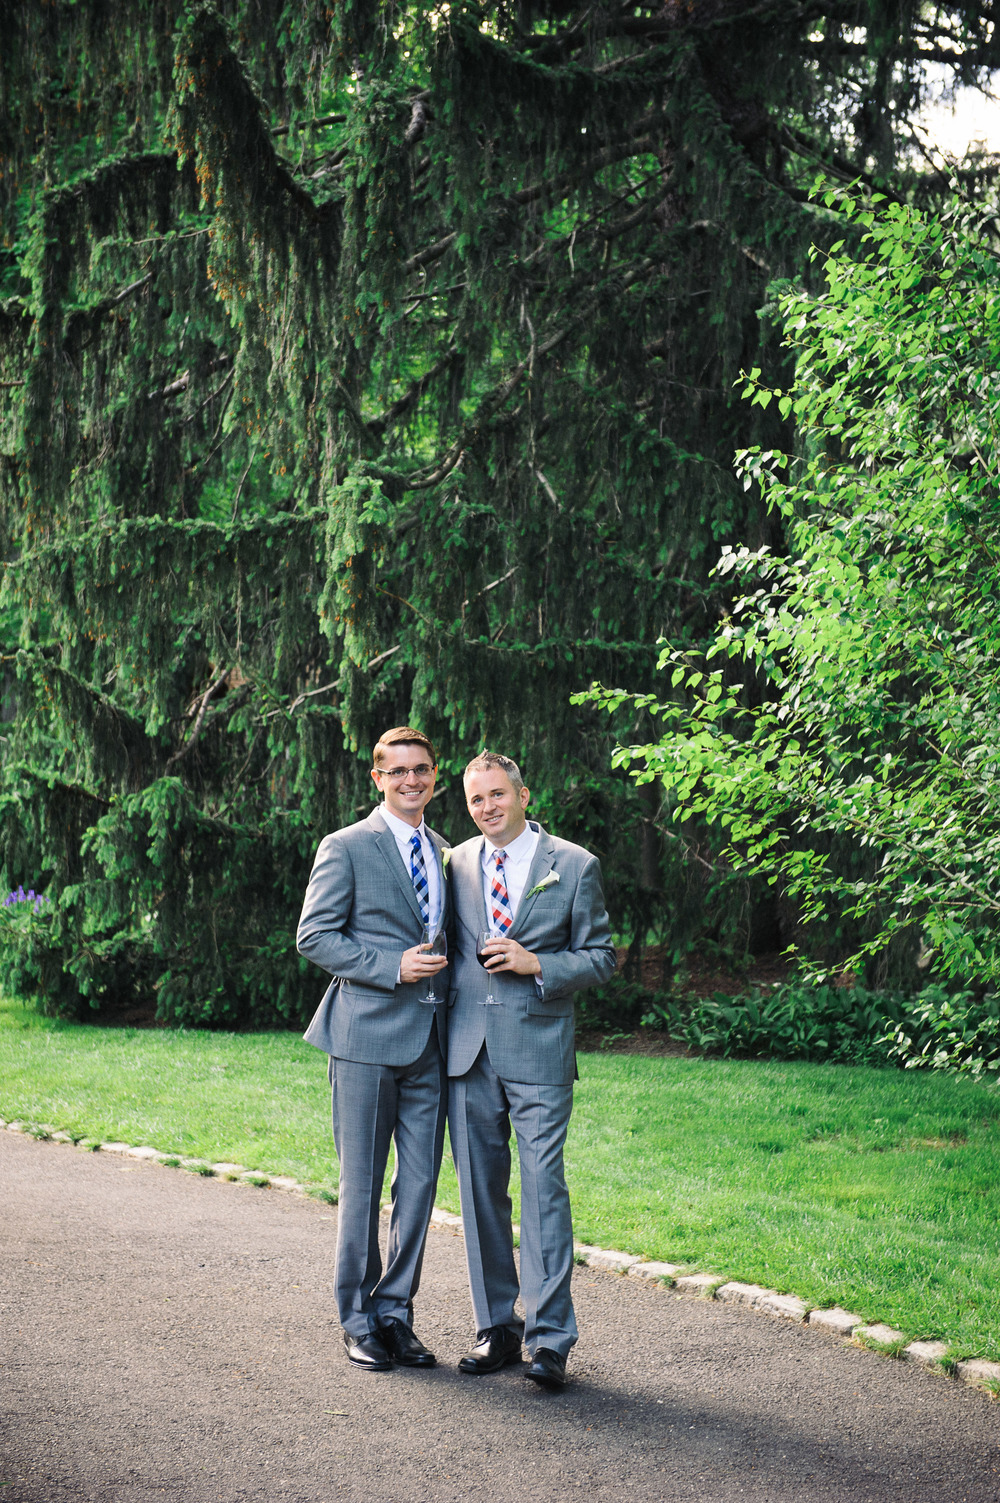 Same Sex Wedding CT Gay Wedding LGBT Wedding308.JPG